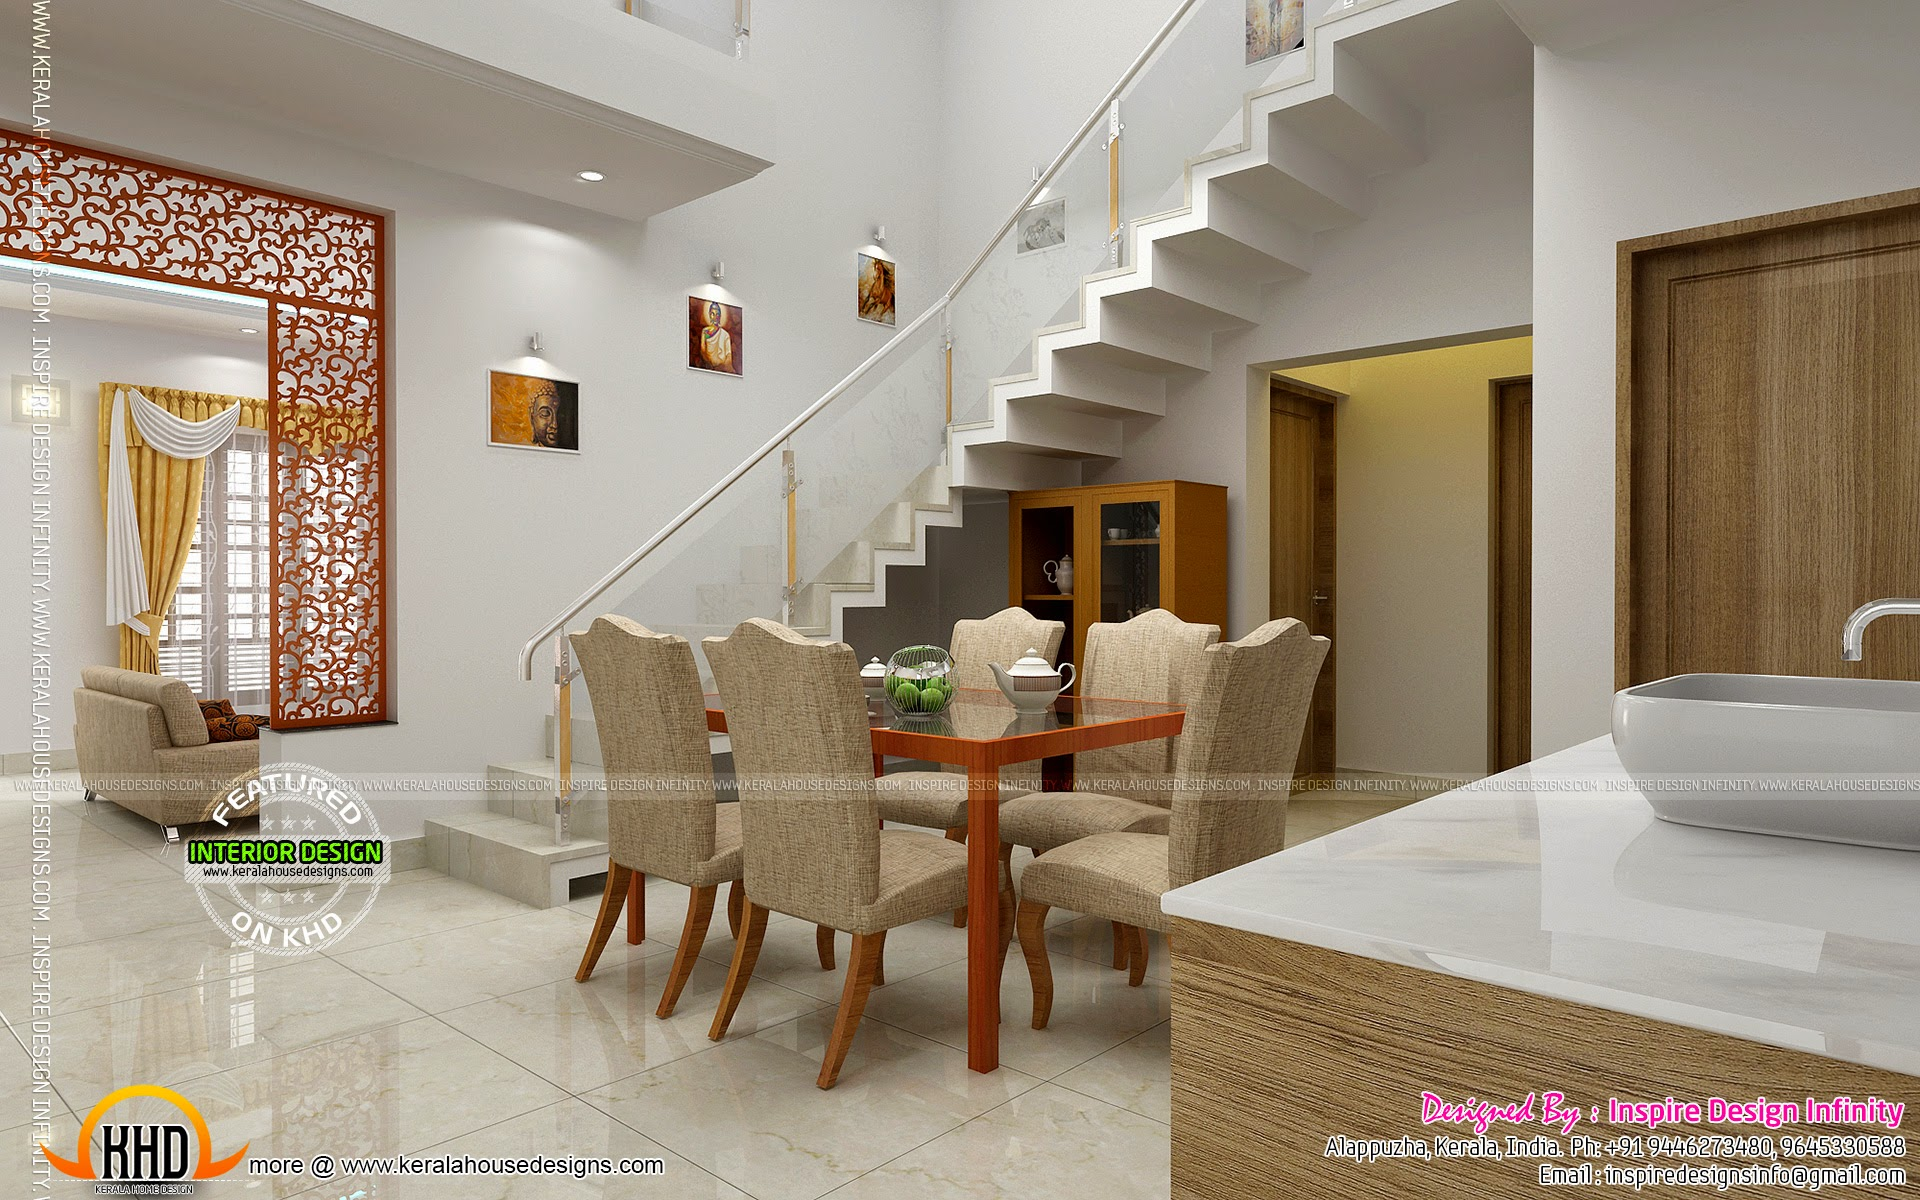 Dining room designs kerala home design and floor plans for Kerala home living room designs